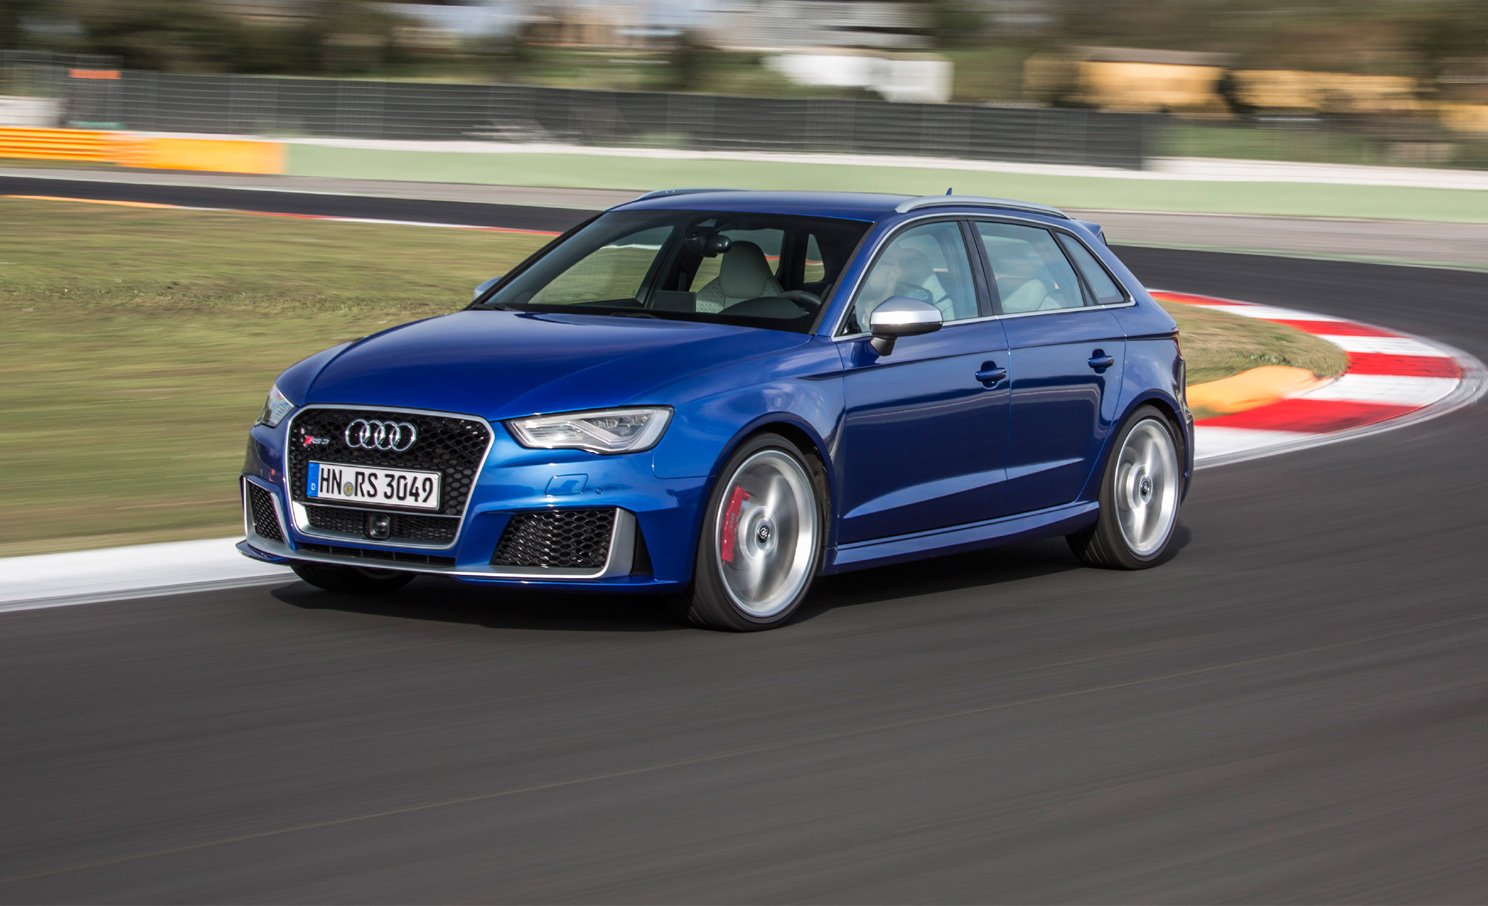 2016 audi rs3 sportback review gtspirit. Black Bedroom Furniture Sets. Home Design Ideas